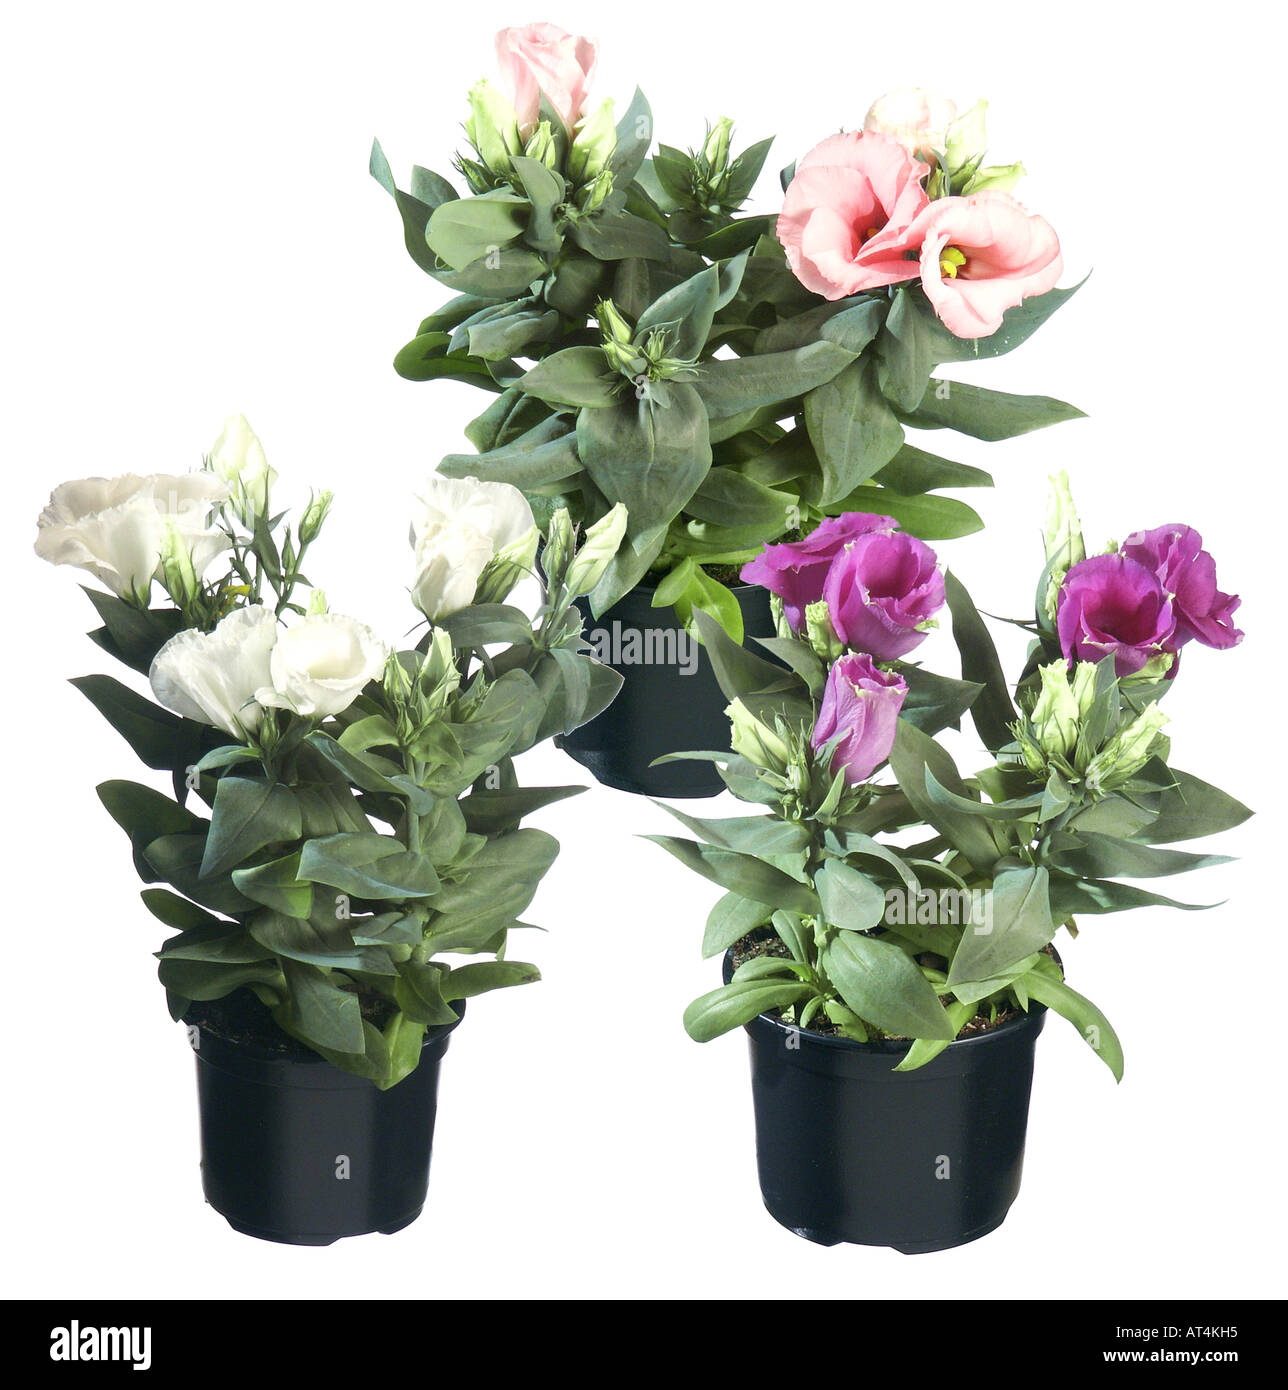 Lisianthus, Tulip Gentian, Texas Bluebell (Eustoma grandiflorum), potted plants, different cultivars - Stock Image